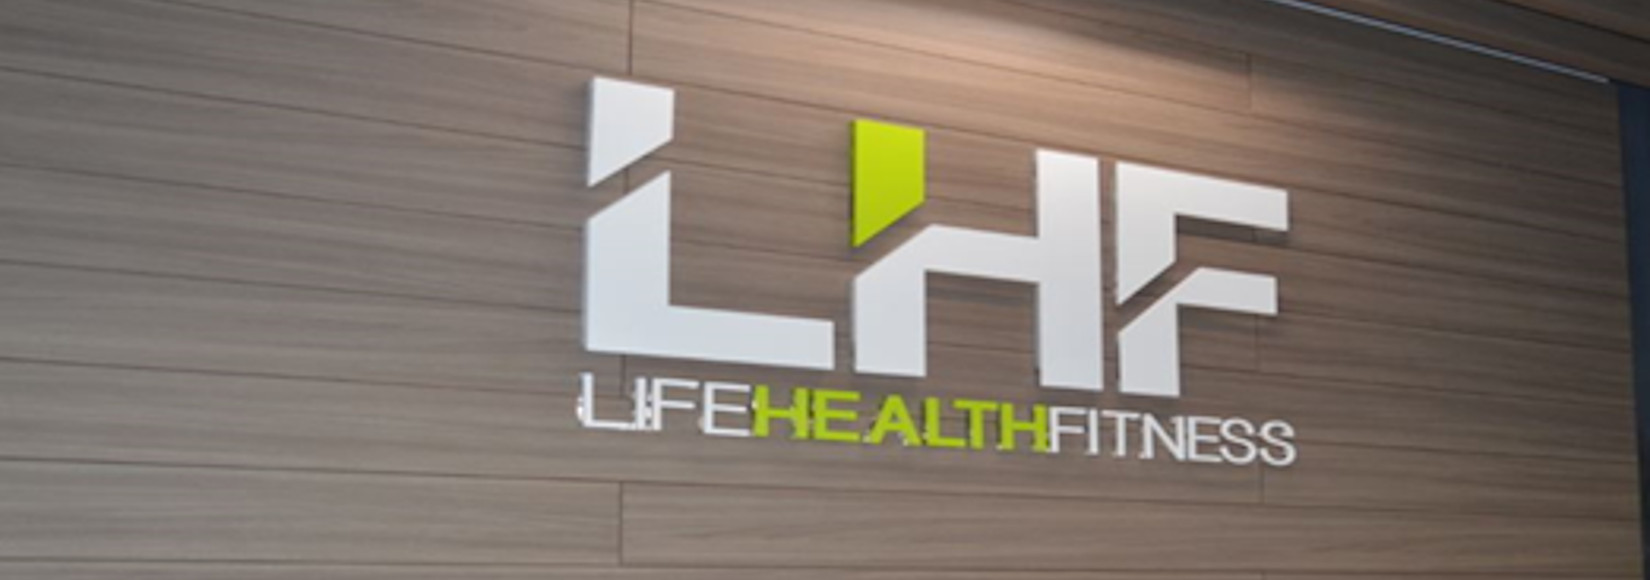 Life Health Fitness wall-mounted sign